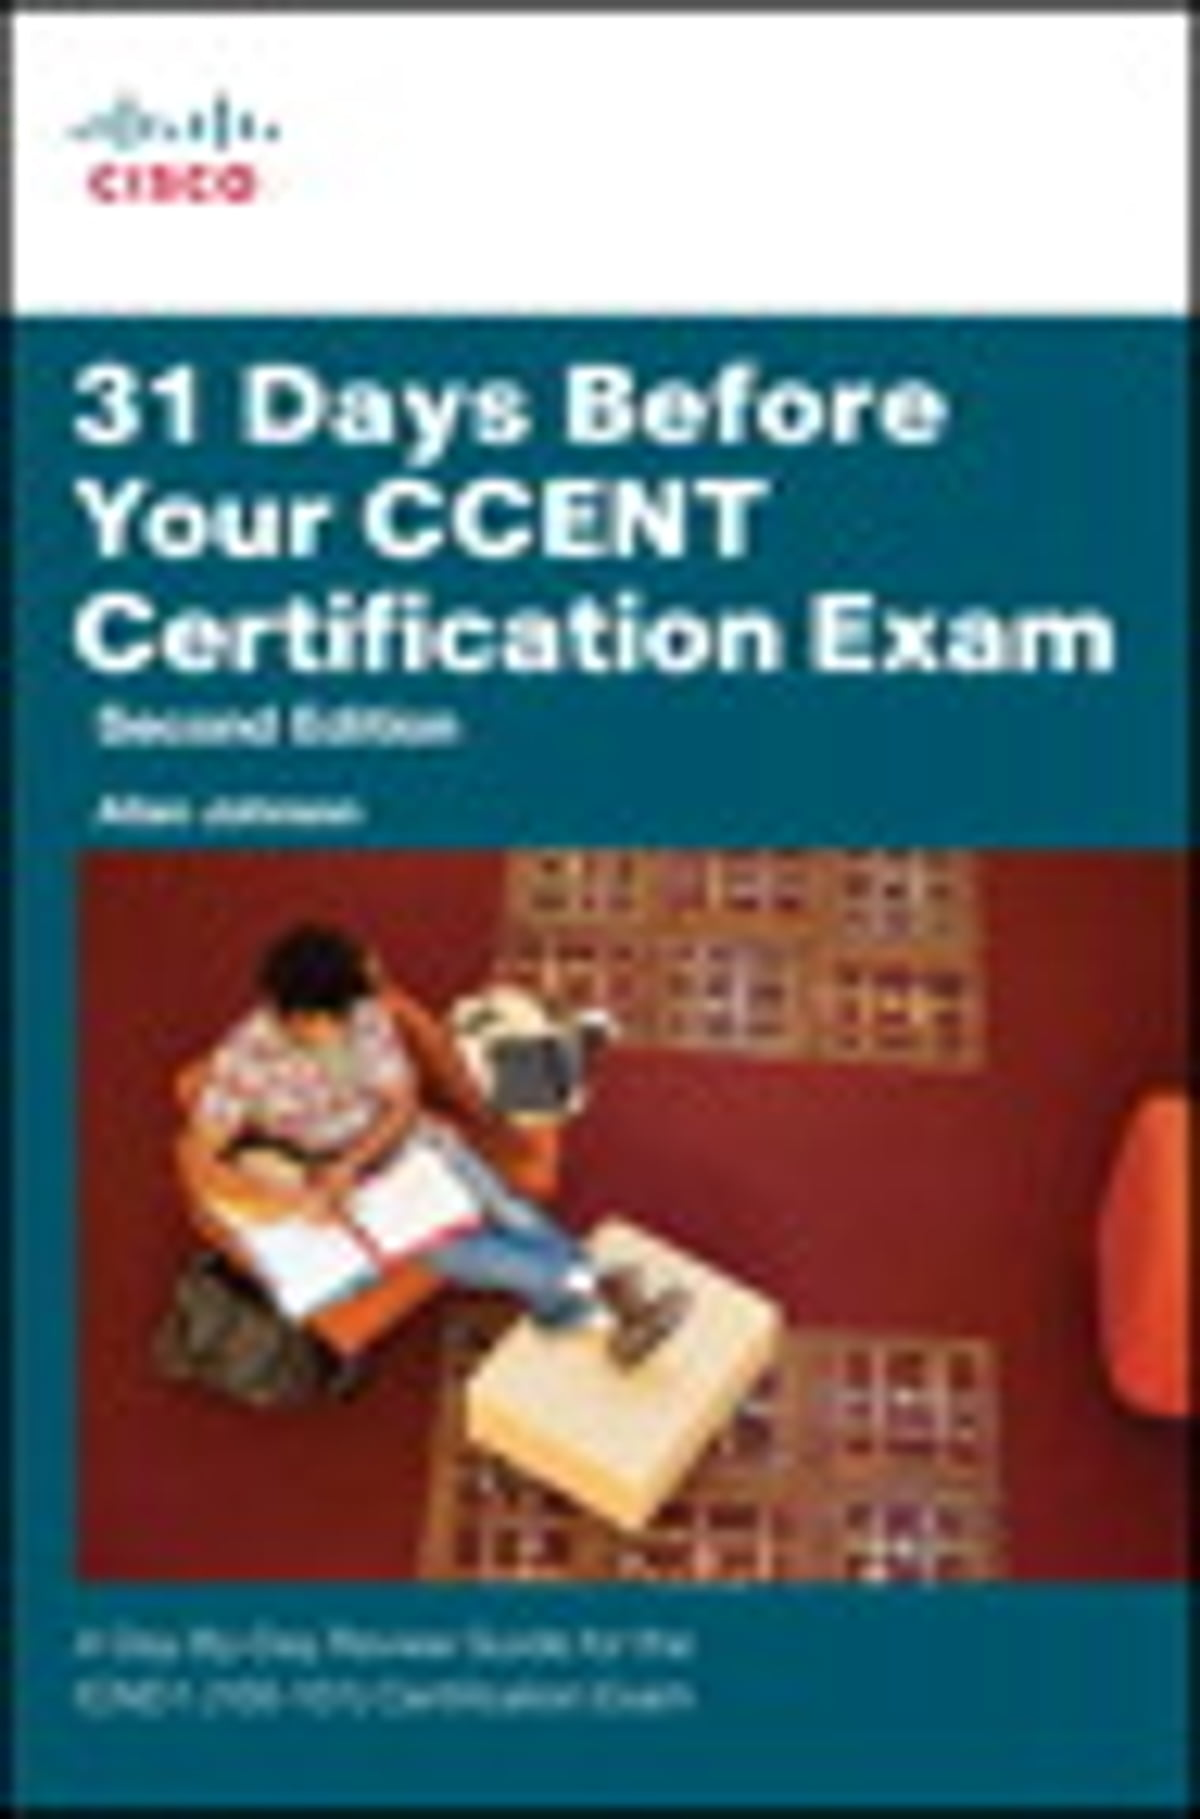 31 Days Before Your Ccent Certification Exam Ebook By Allan Johnson